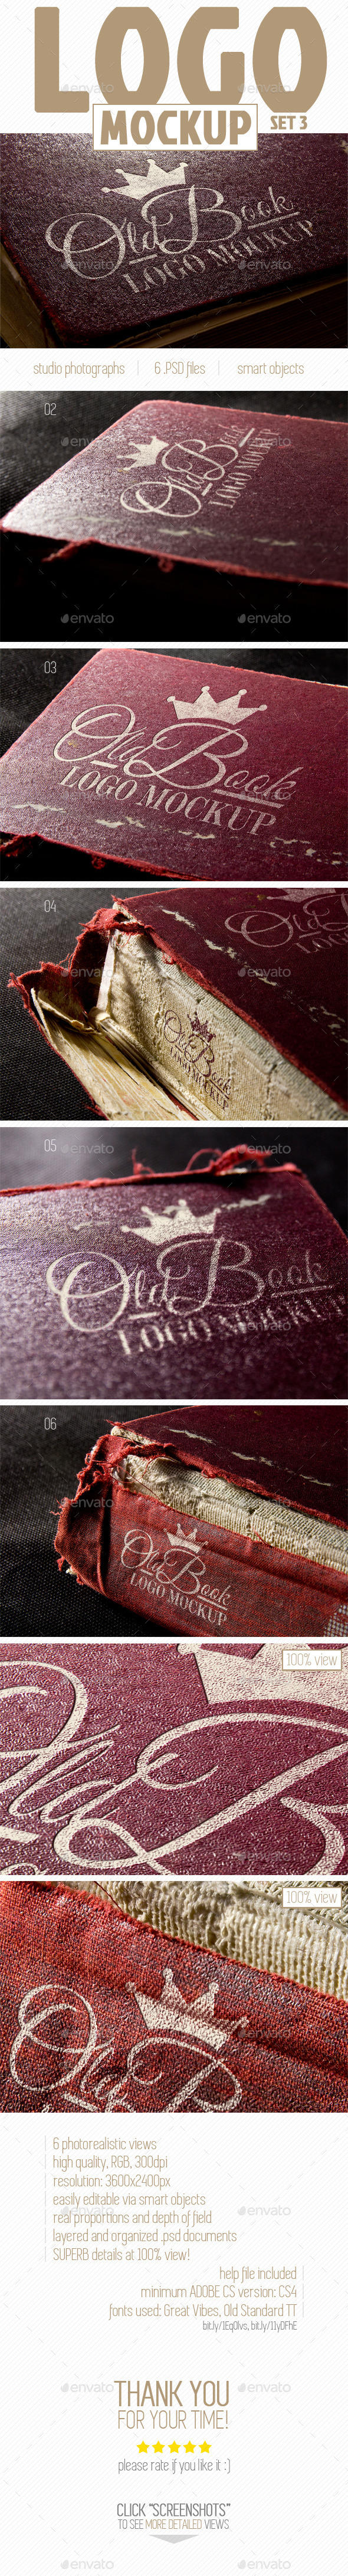 Logo Mockup (Set 3 - Old Book) - Logo Product Mock-Ups